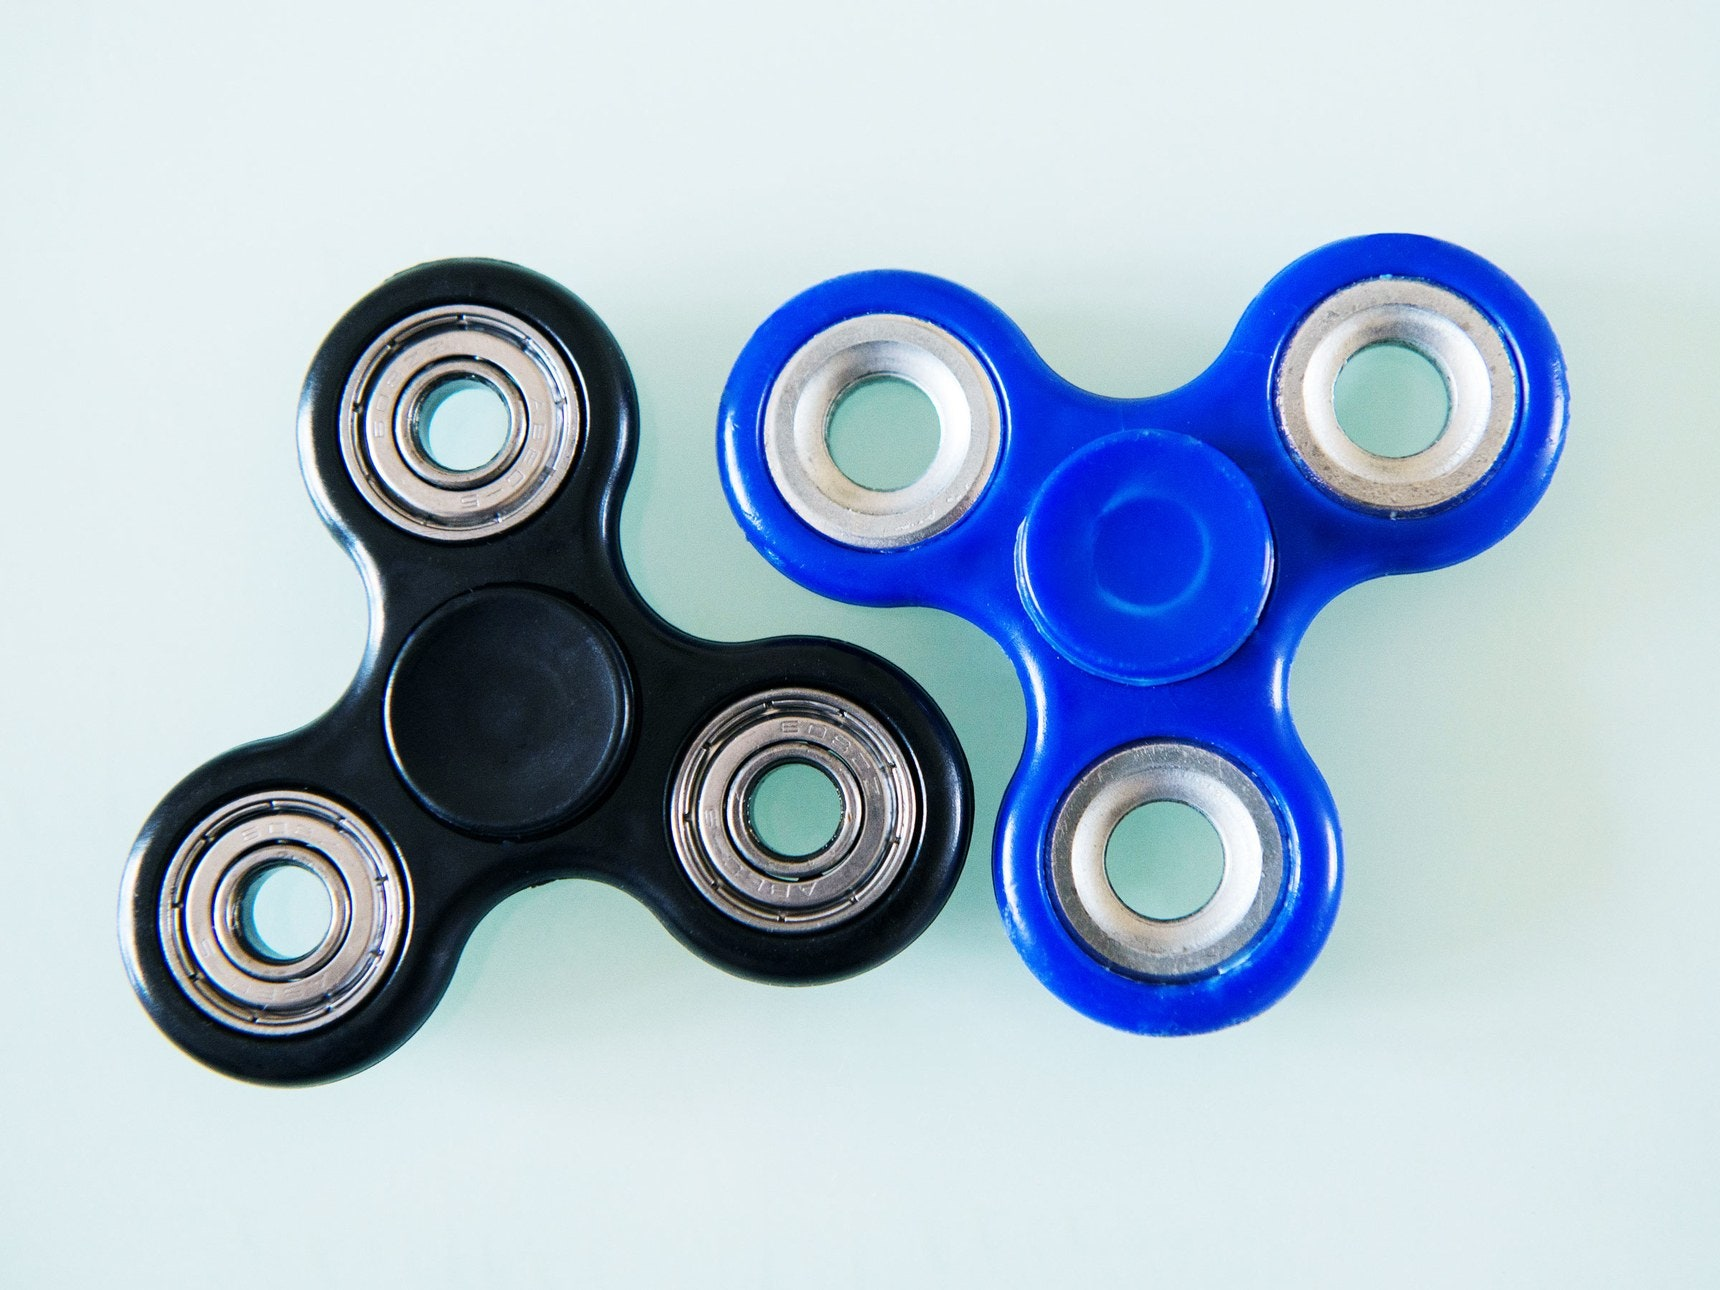 The Physics Of Fidget Spinners Explaining The Moment Of